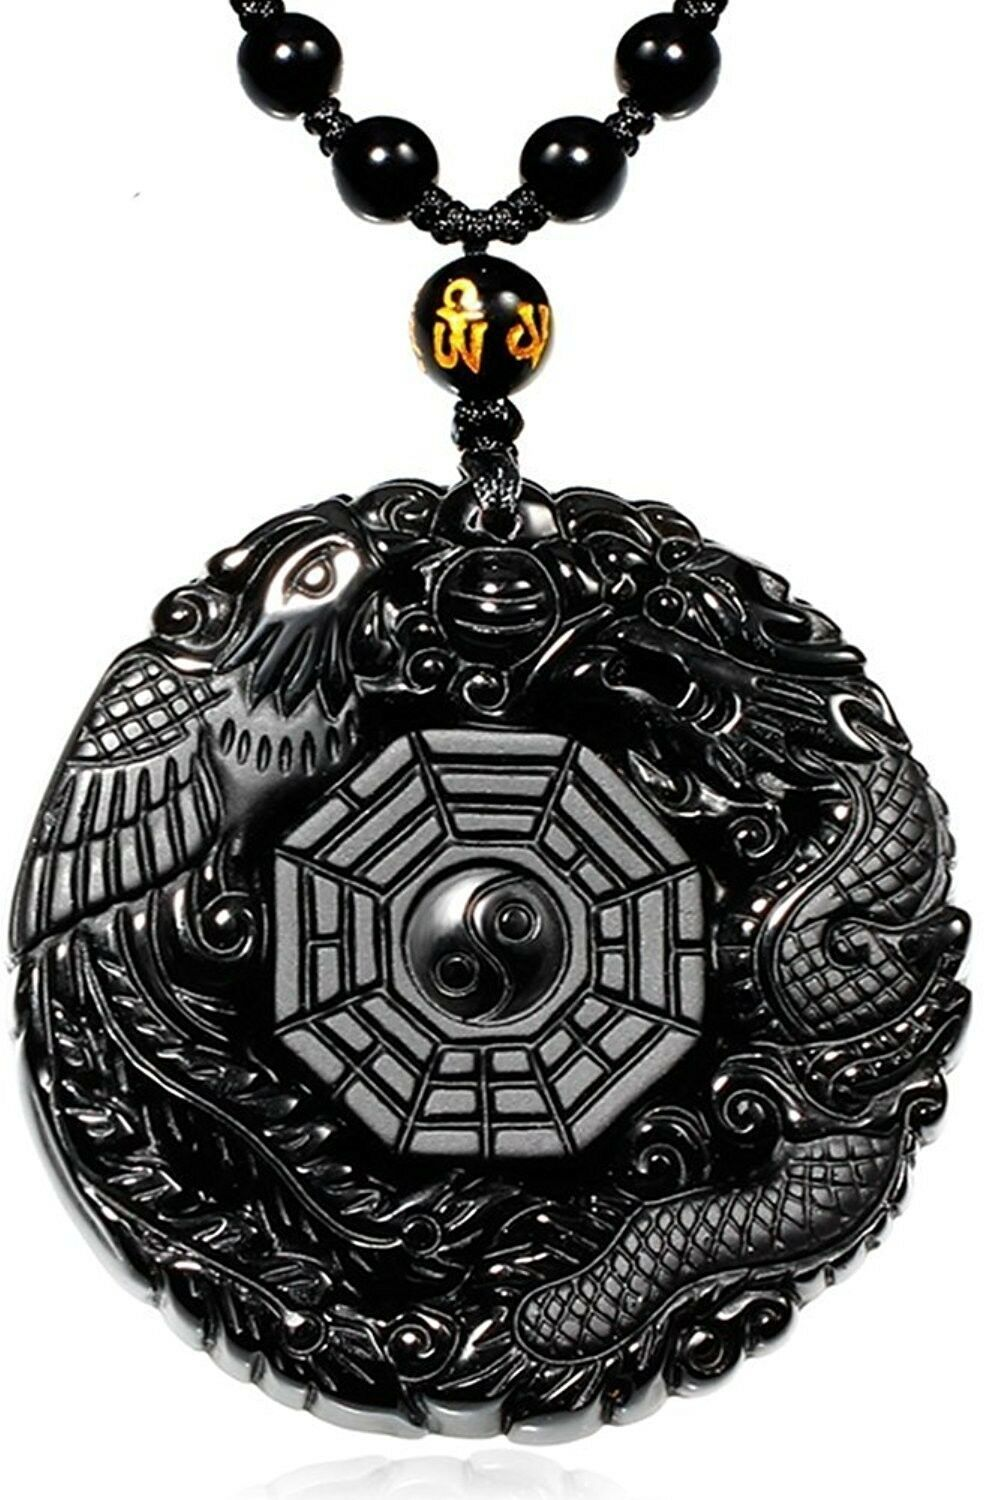 Primary image for Black Elegant Round Natural Obsidian Crystal Pendant Necklace Dragon And Phoenix